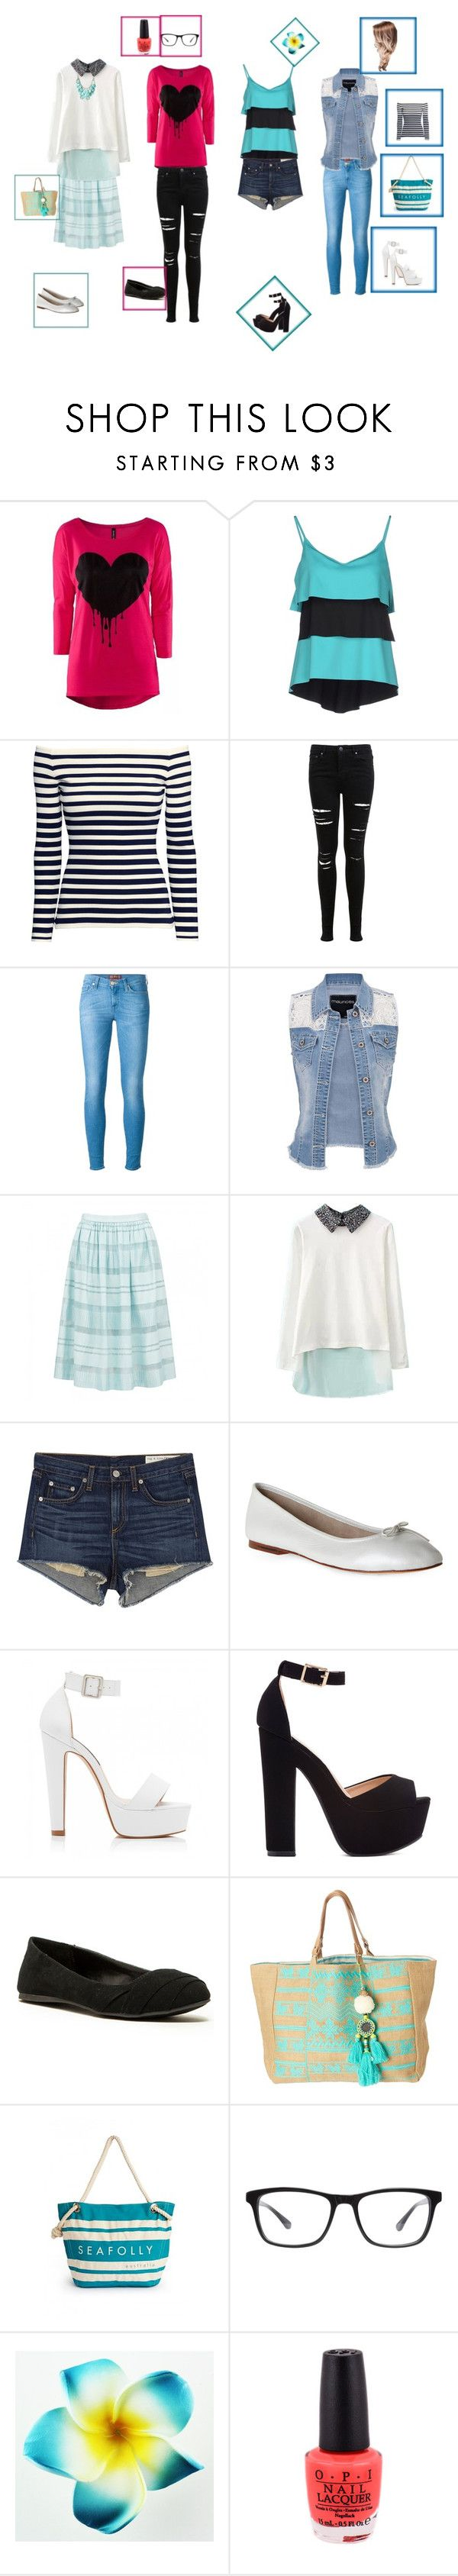 """""""Wanna Be?"""" by justkittn33 ❤ liked on Polyvore featuring FISICO Cristina Ferrari, H&M, Miss Selfridge, 7 For All Mankind, maurices, Forever New, rag & bone/JEAN, Bloch, Qupid and Star Mela"""